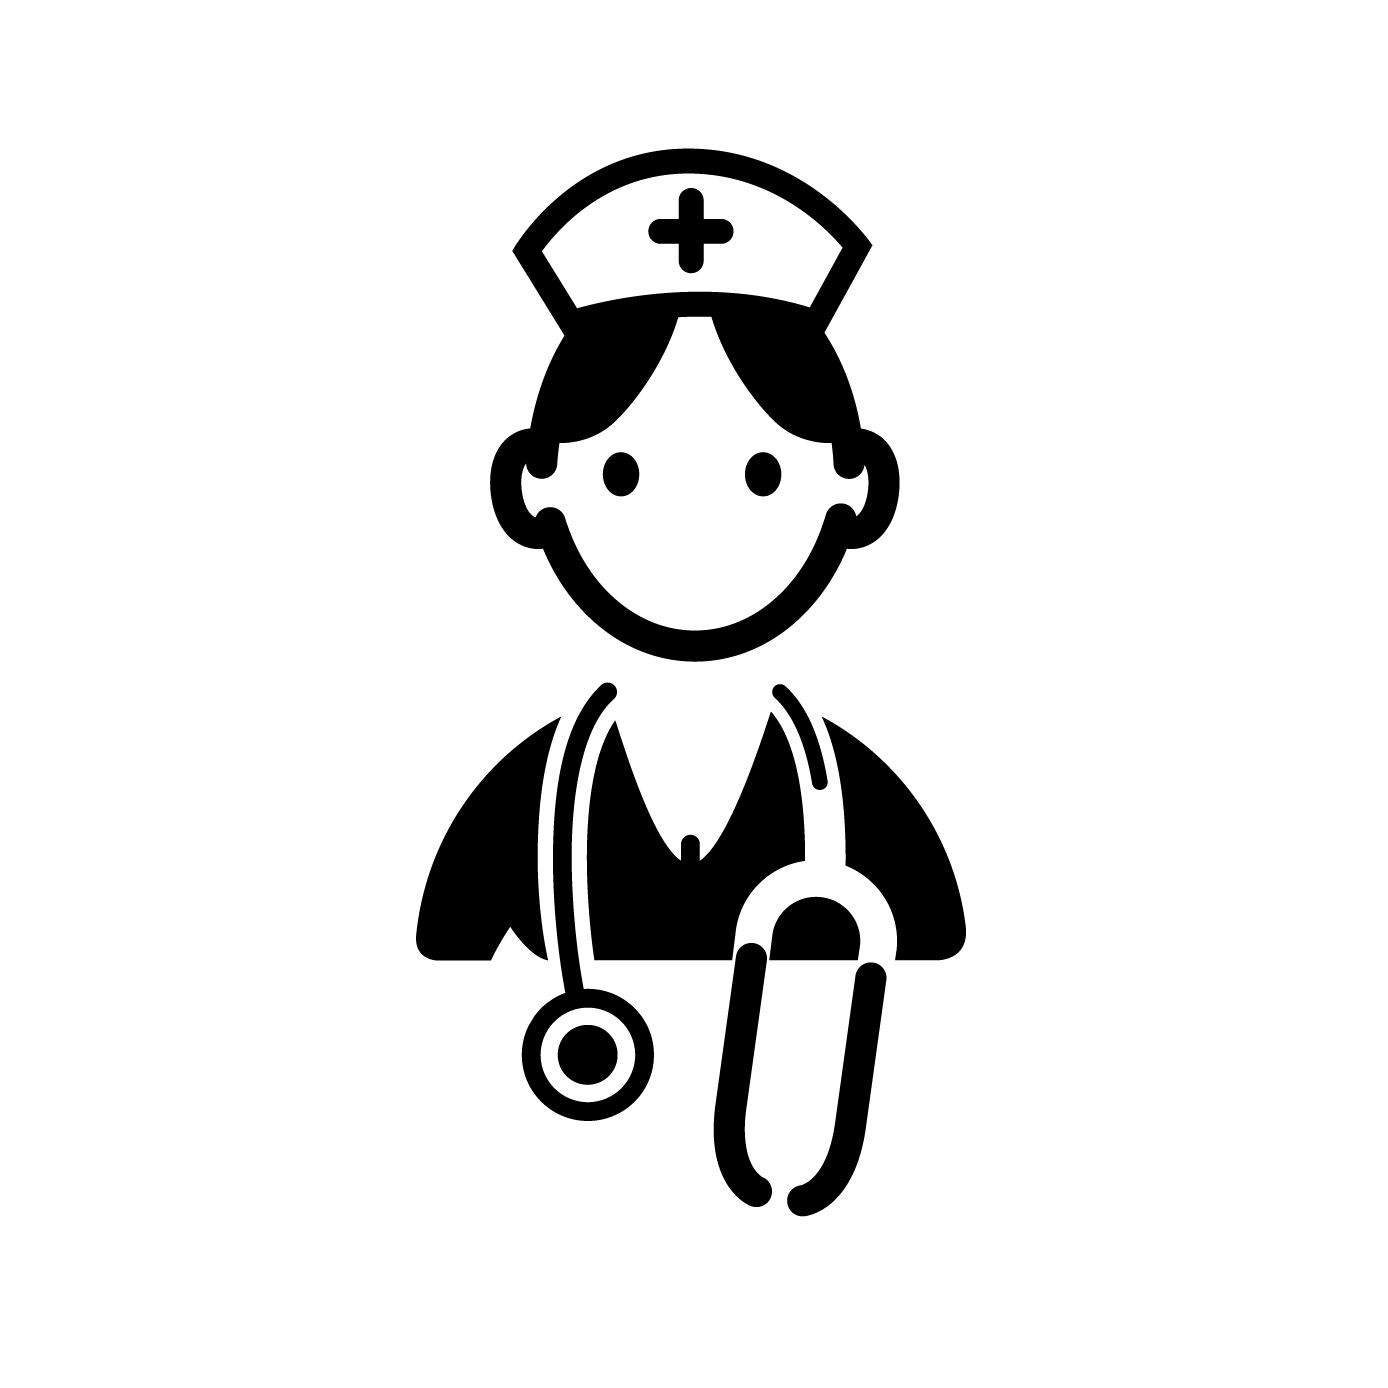 Free Registered Nurse Cliparts, Download Free Clip Art